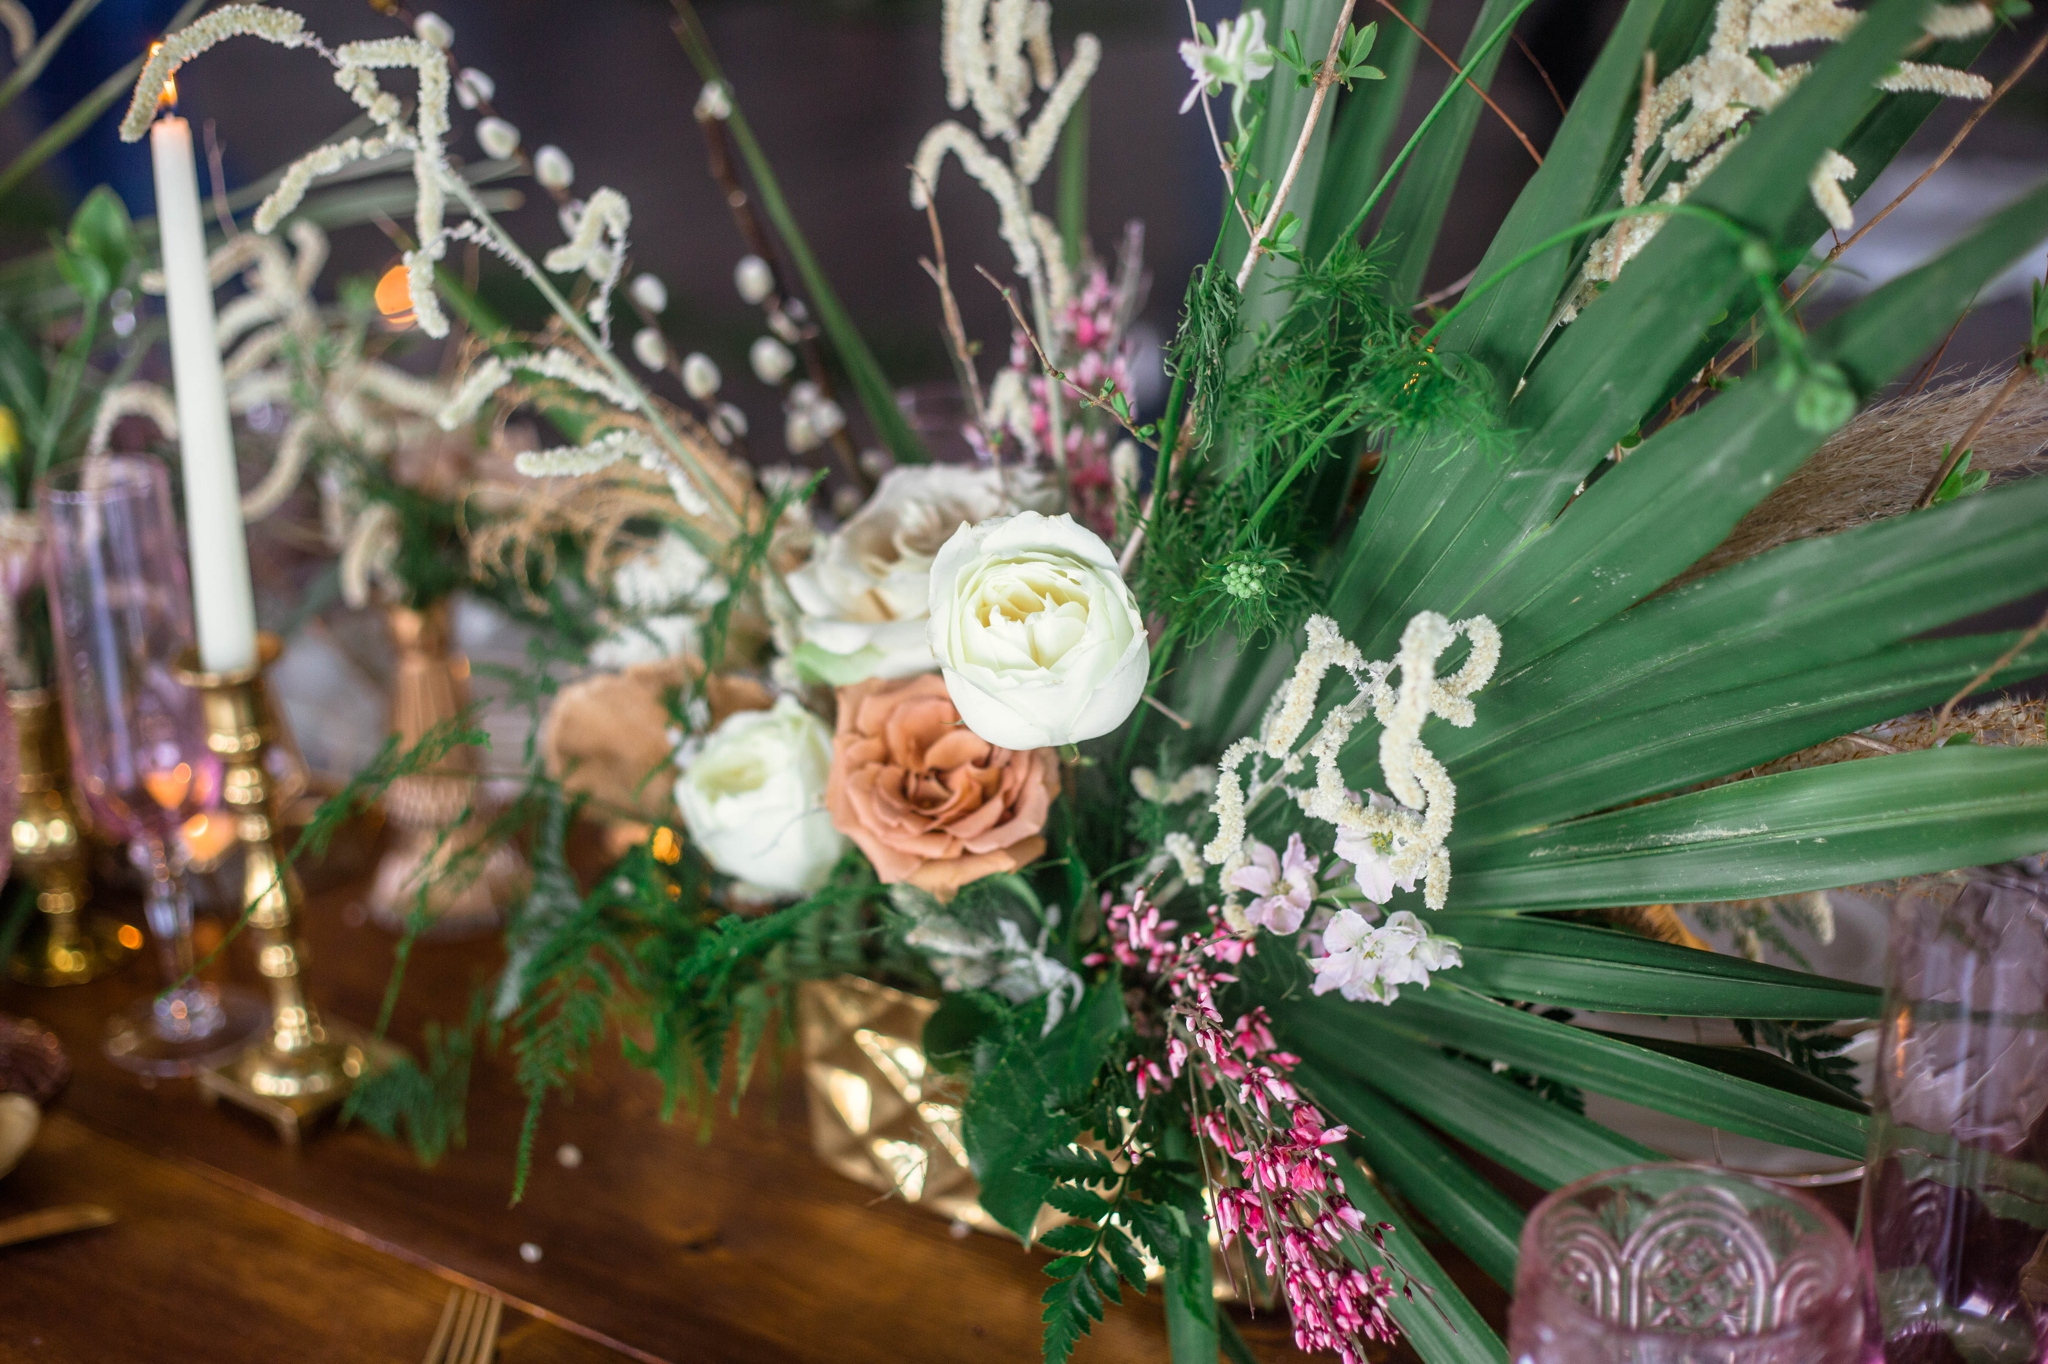 Wedding Table Setting with white and gold plates, pink glass wear, gold and white silverware - colorful flowers and tropical center piece - Destination Wedding Inspiration - Honolulu, Oahu, Hawaii Photographer